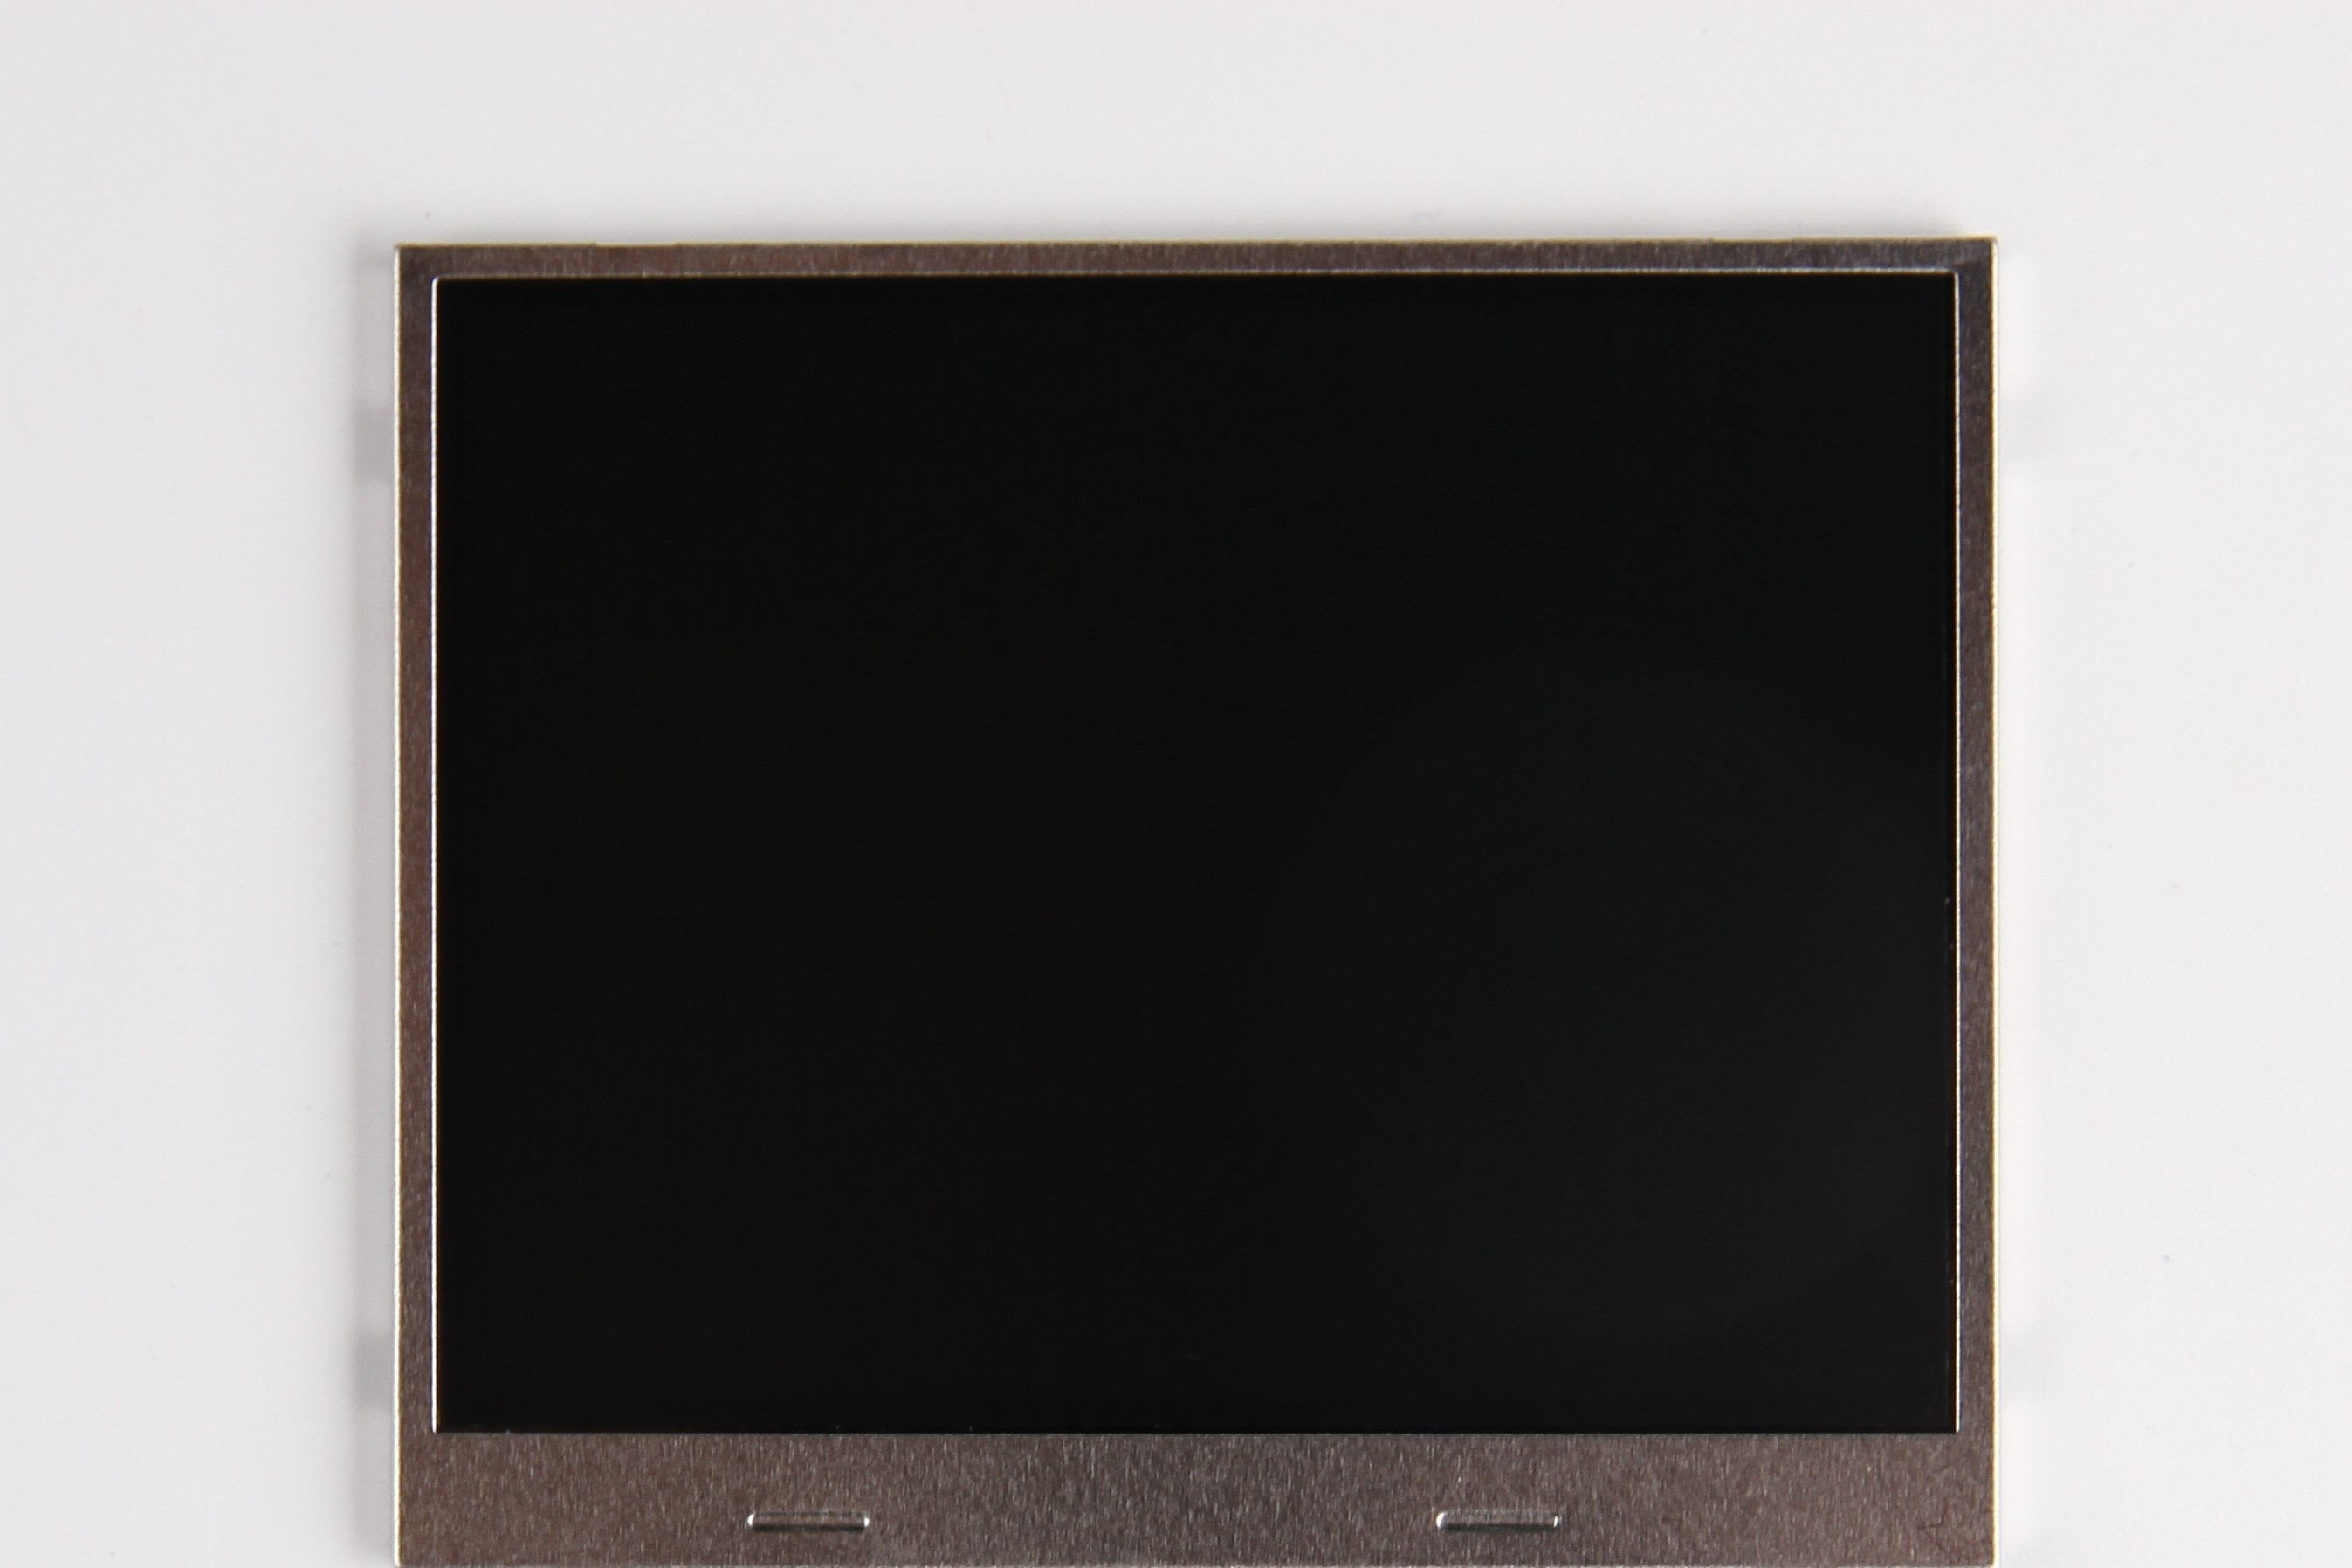 Best Price 3.5 Inch Monitor Small LCD Display Touch Panel